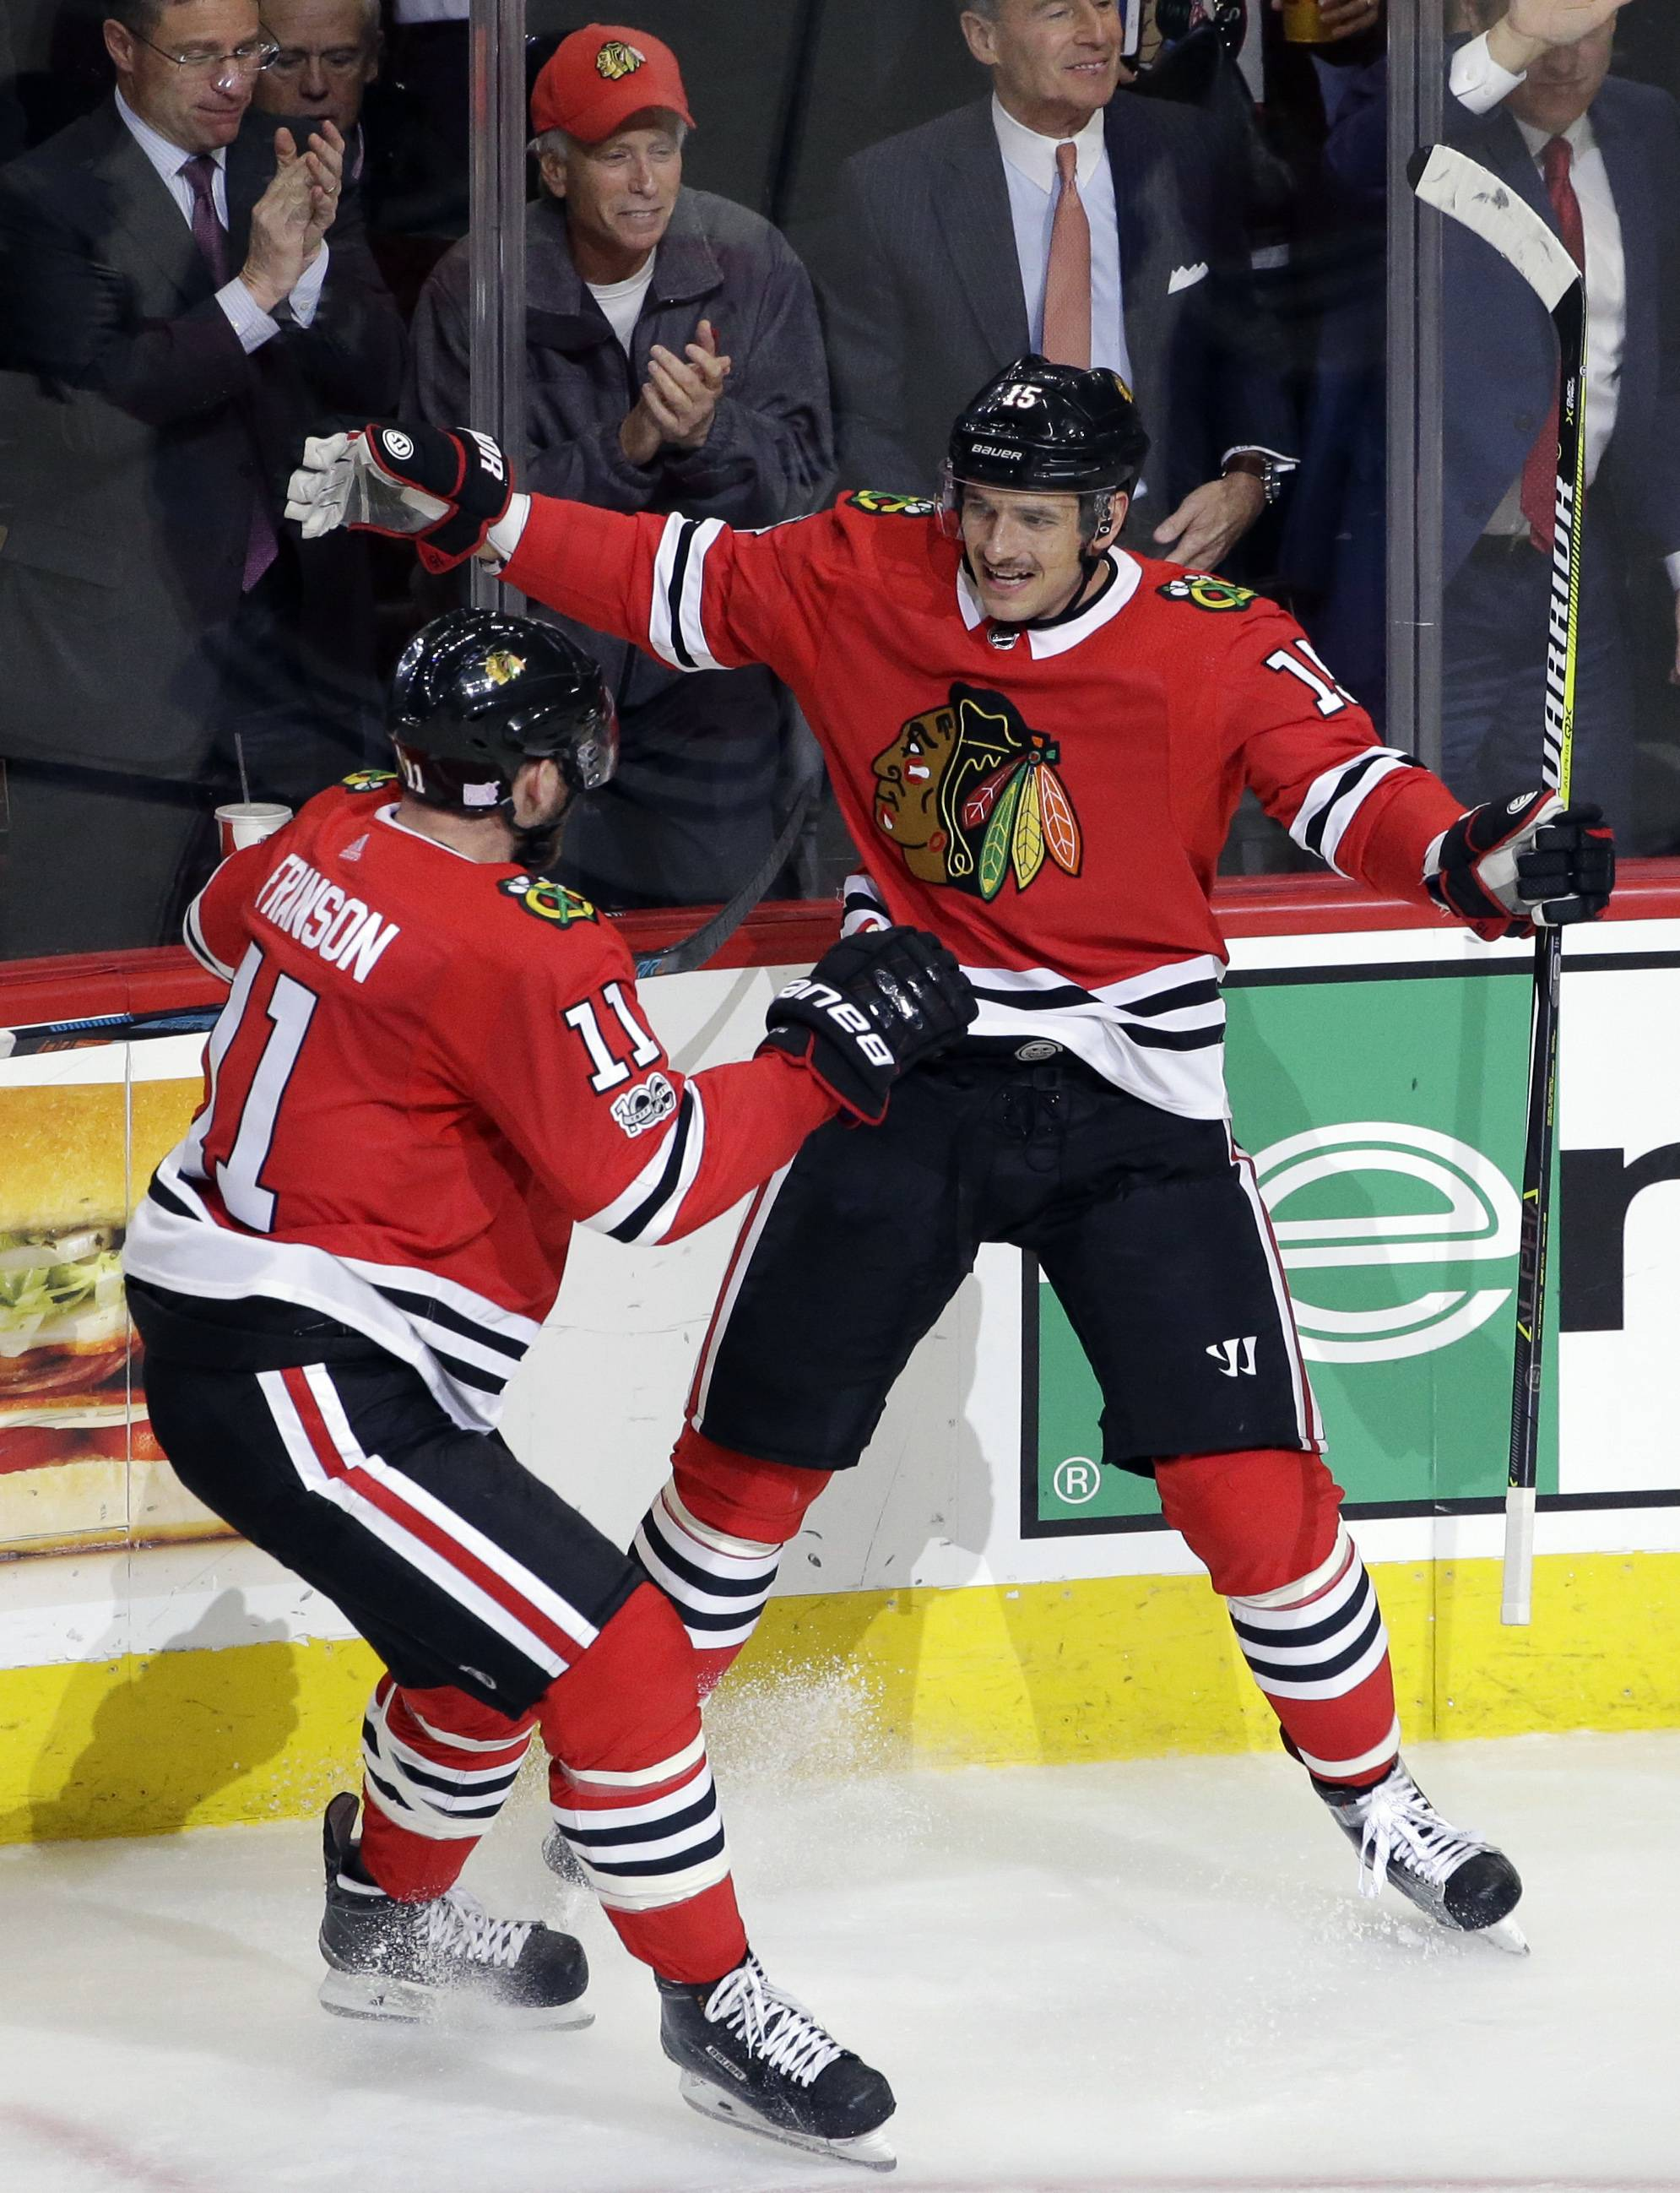 Artem Anisimov will not play Saturday against the Islanders, but the Chicago Blackhawks are hoping the center can return to face the Tampa Bay Lightning on Monday.